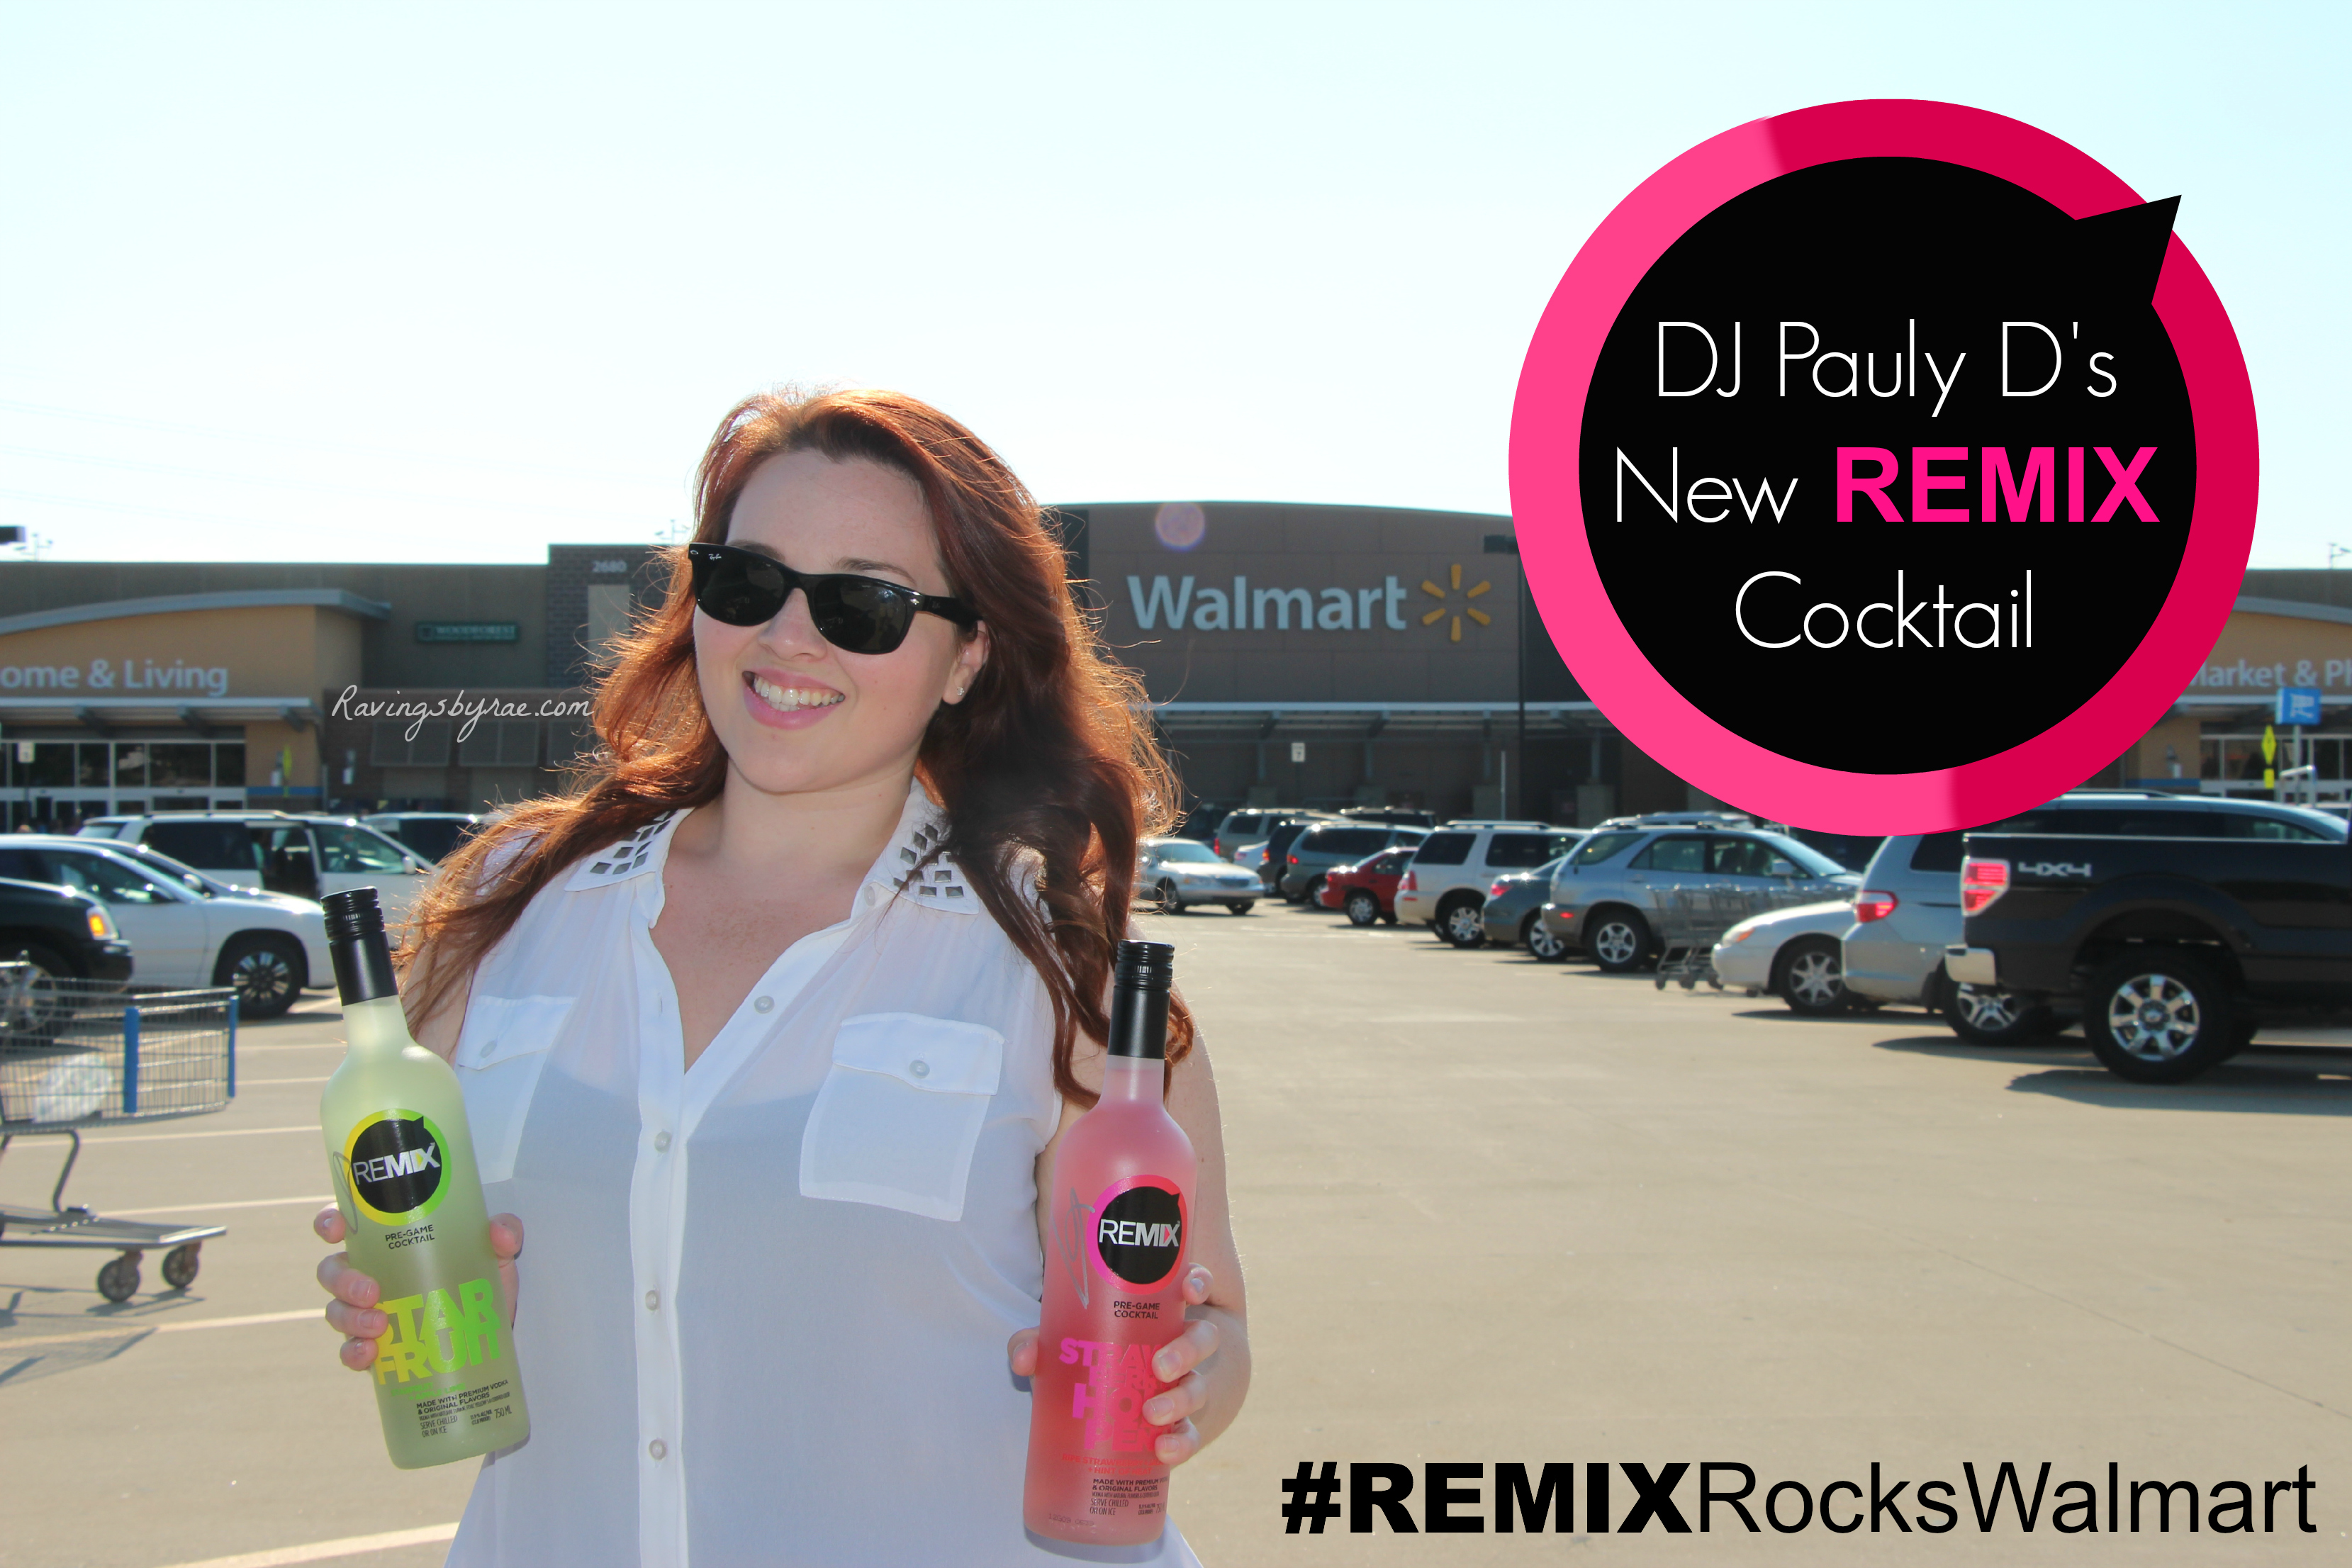 DJ Pauly D's New REMIX Cocktail [Event at Walmart]